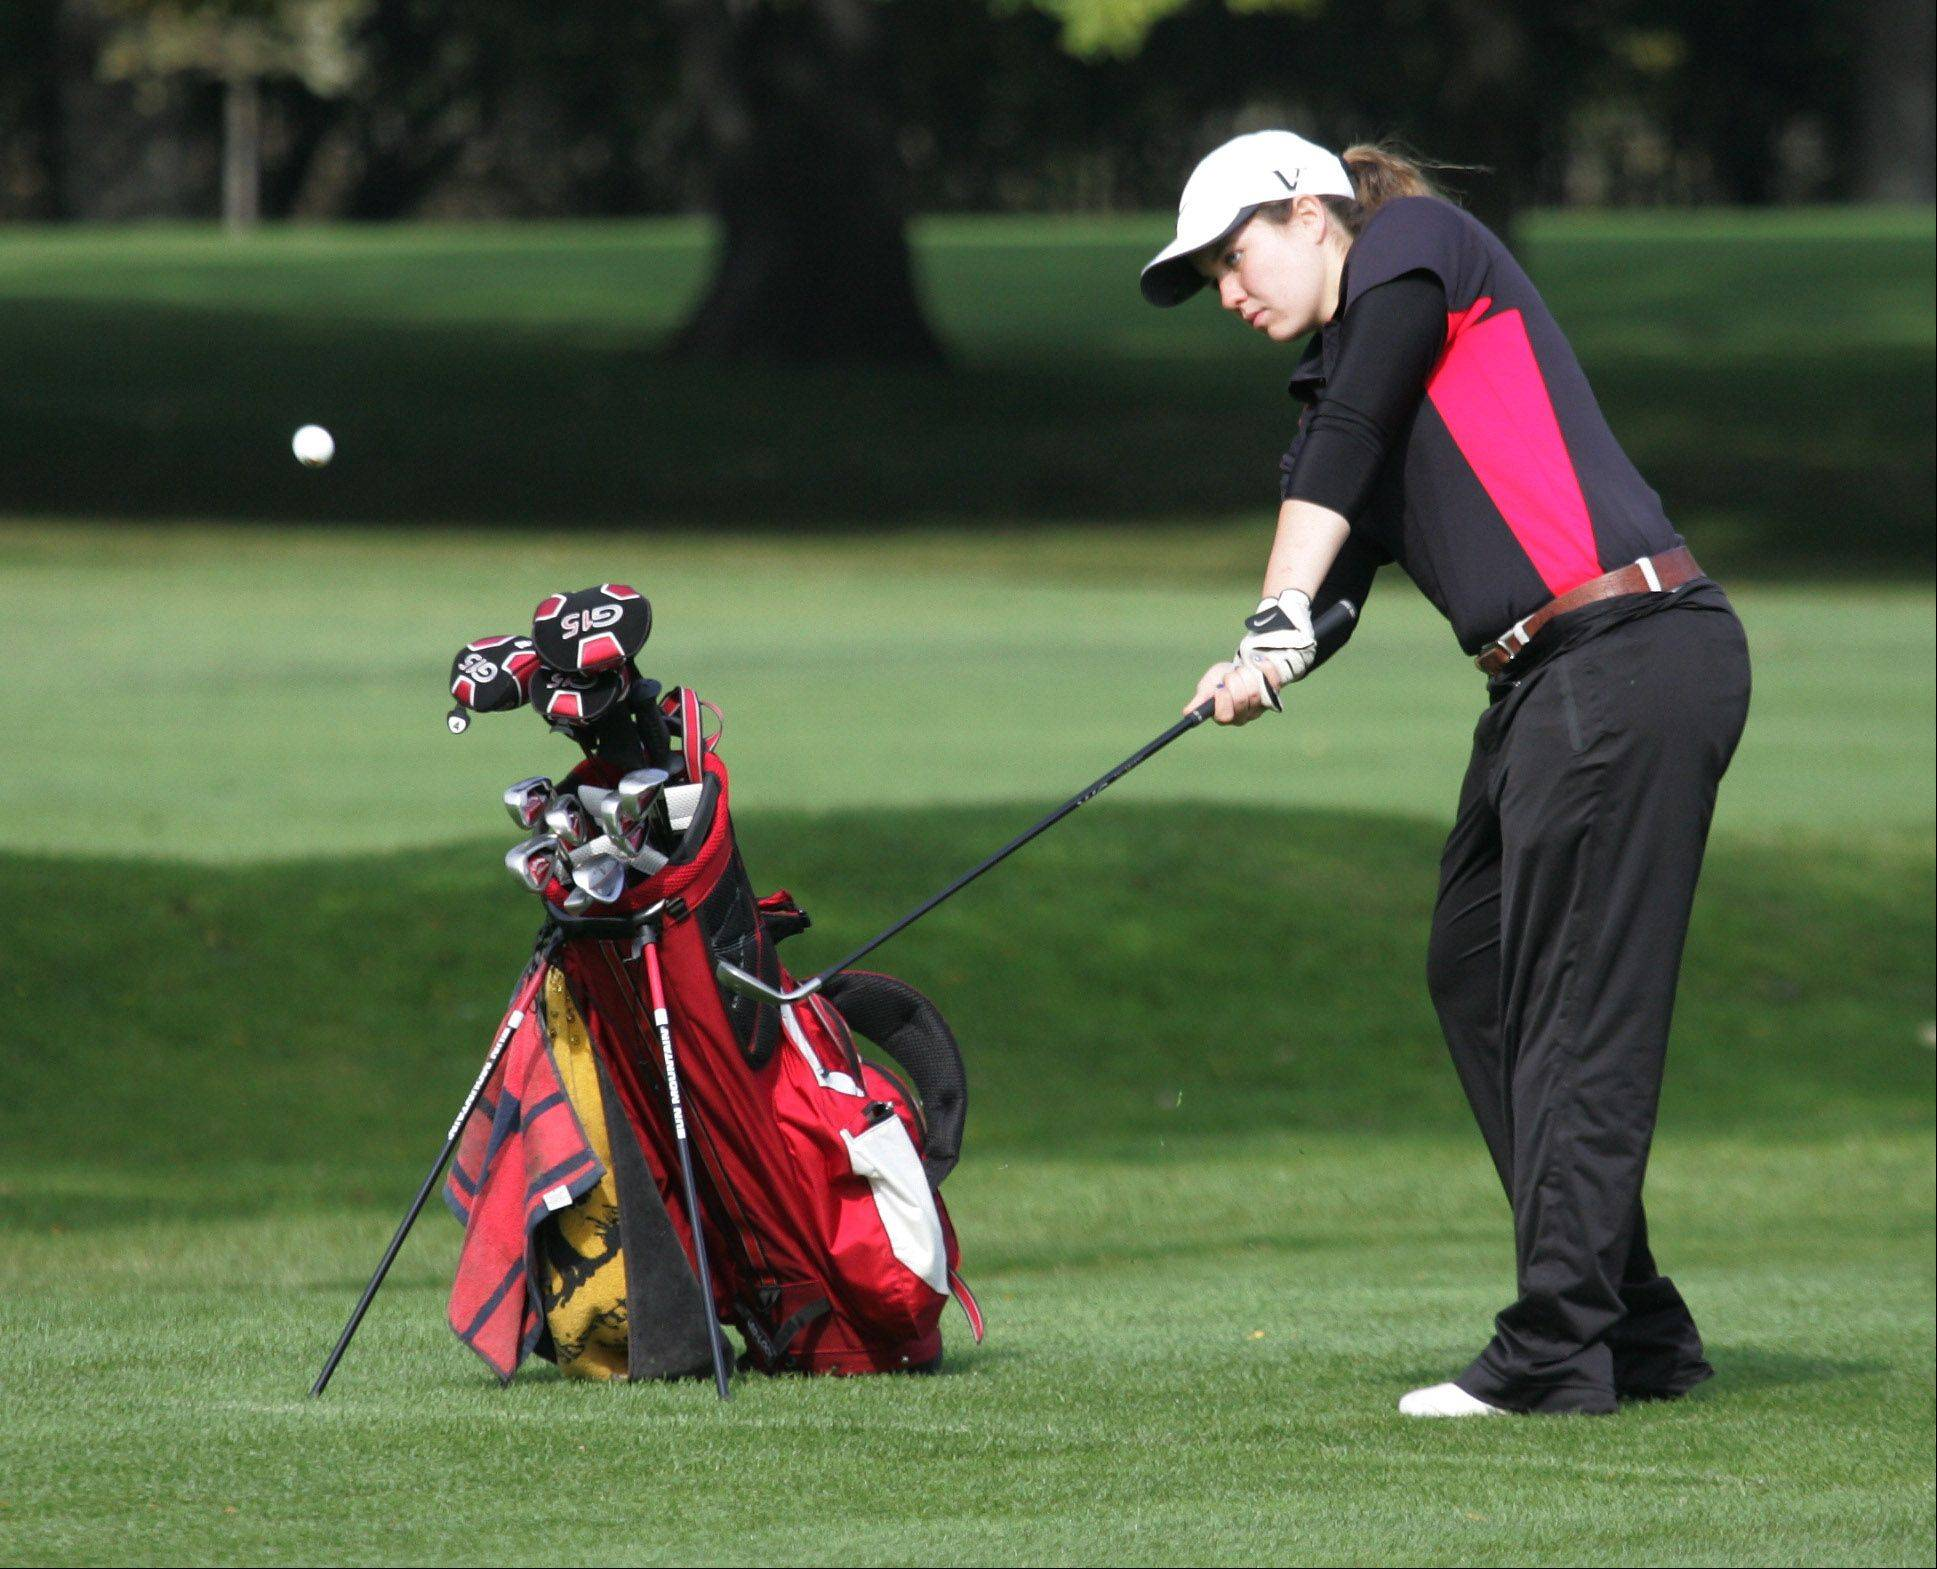 Mundelein golfer Holly Gutlund on the sixth hole during the North Suburban Conference girls golf tournament Tuesday at Deerpath Golf Course in Lake Forest.